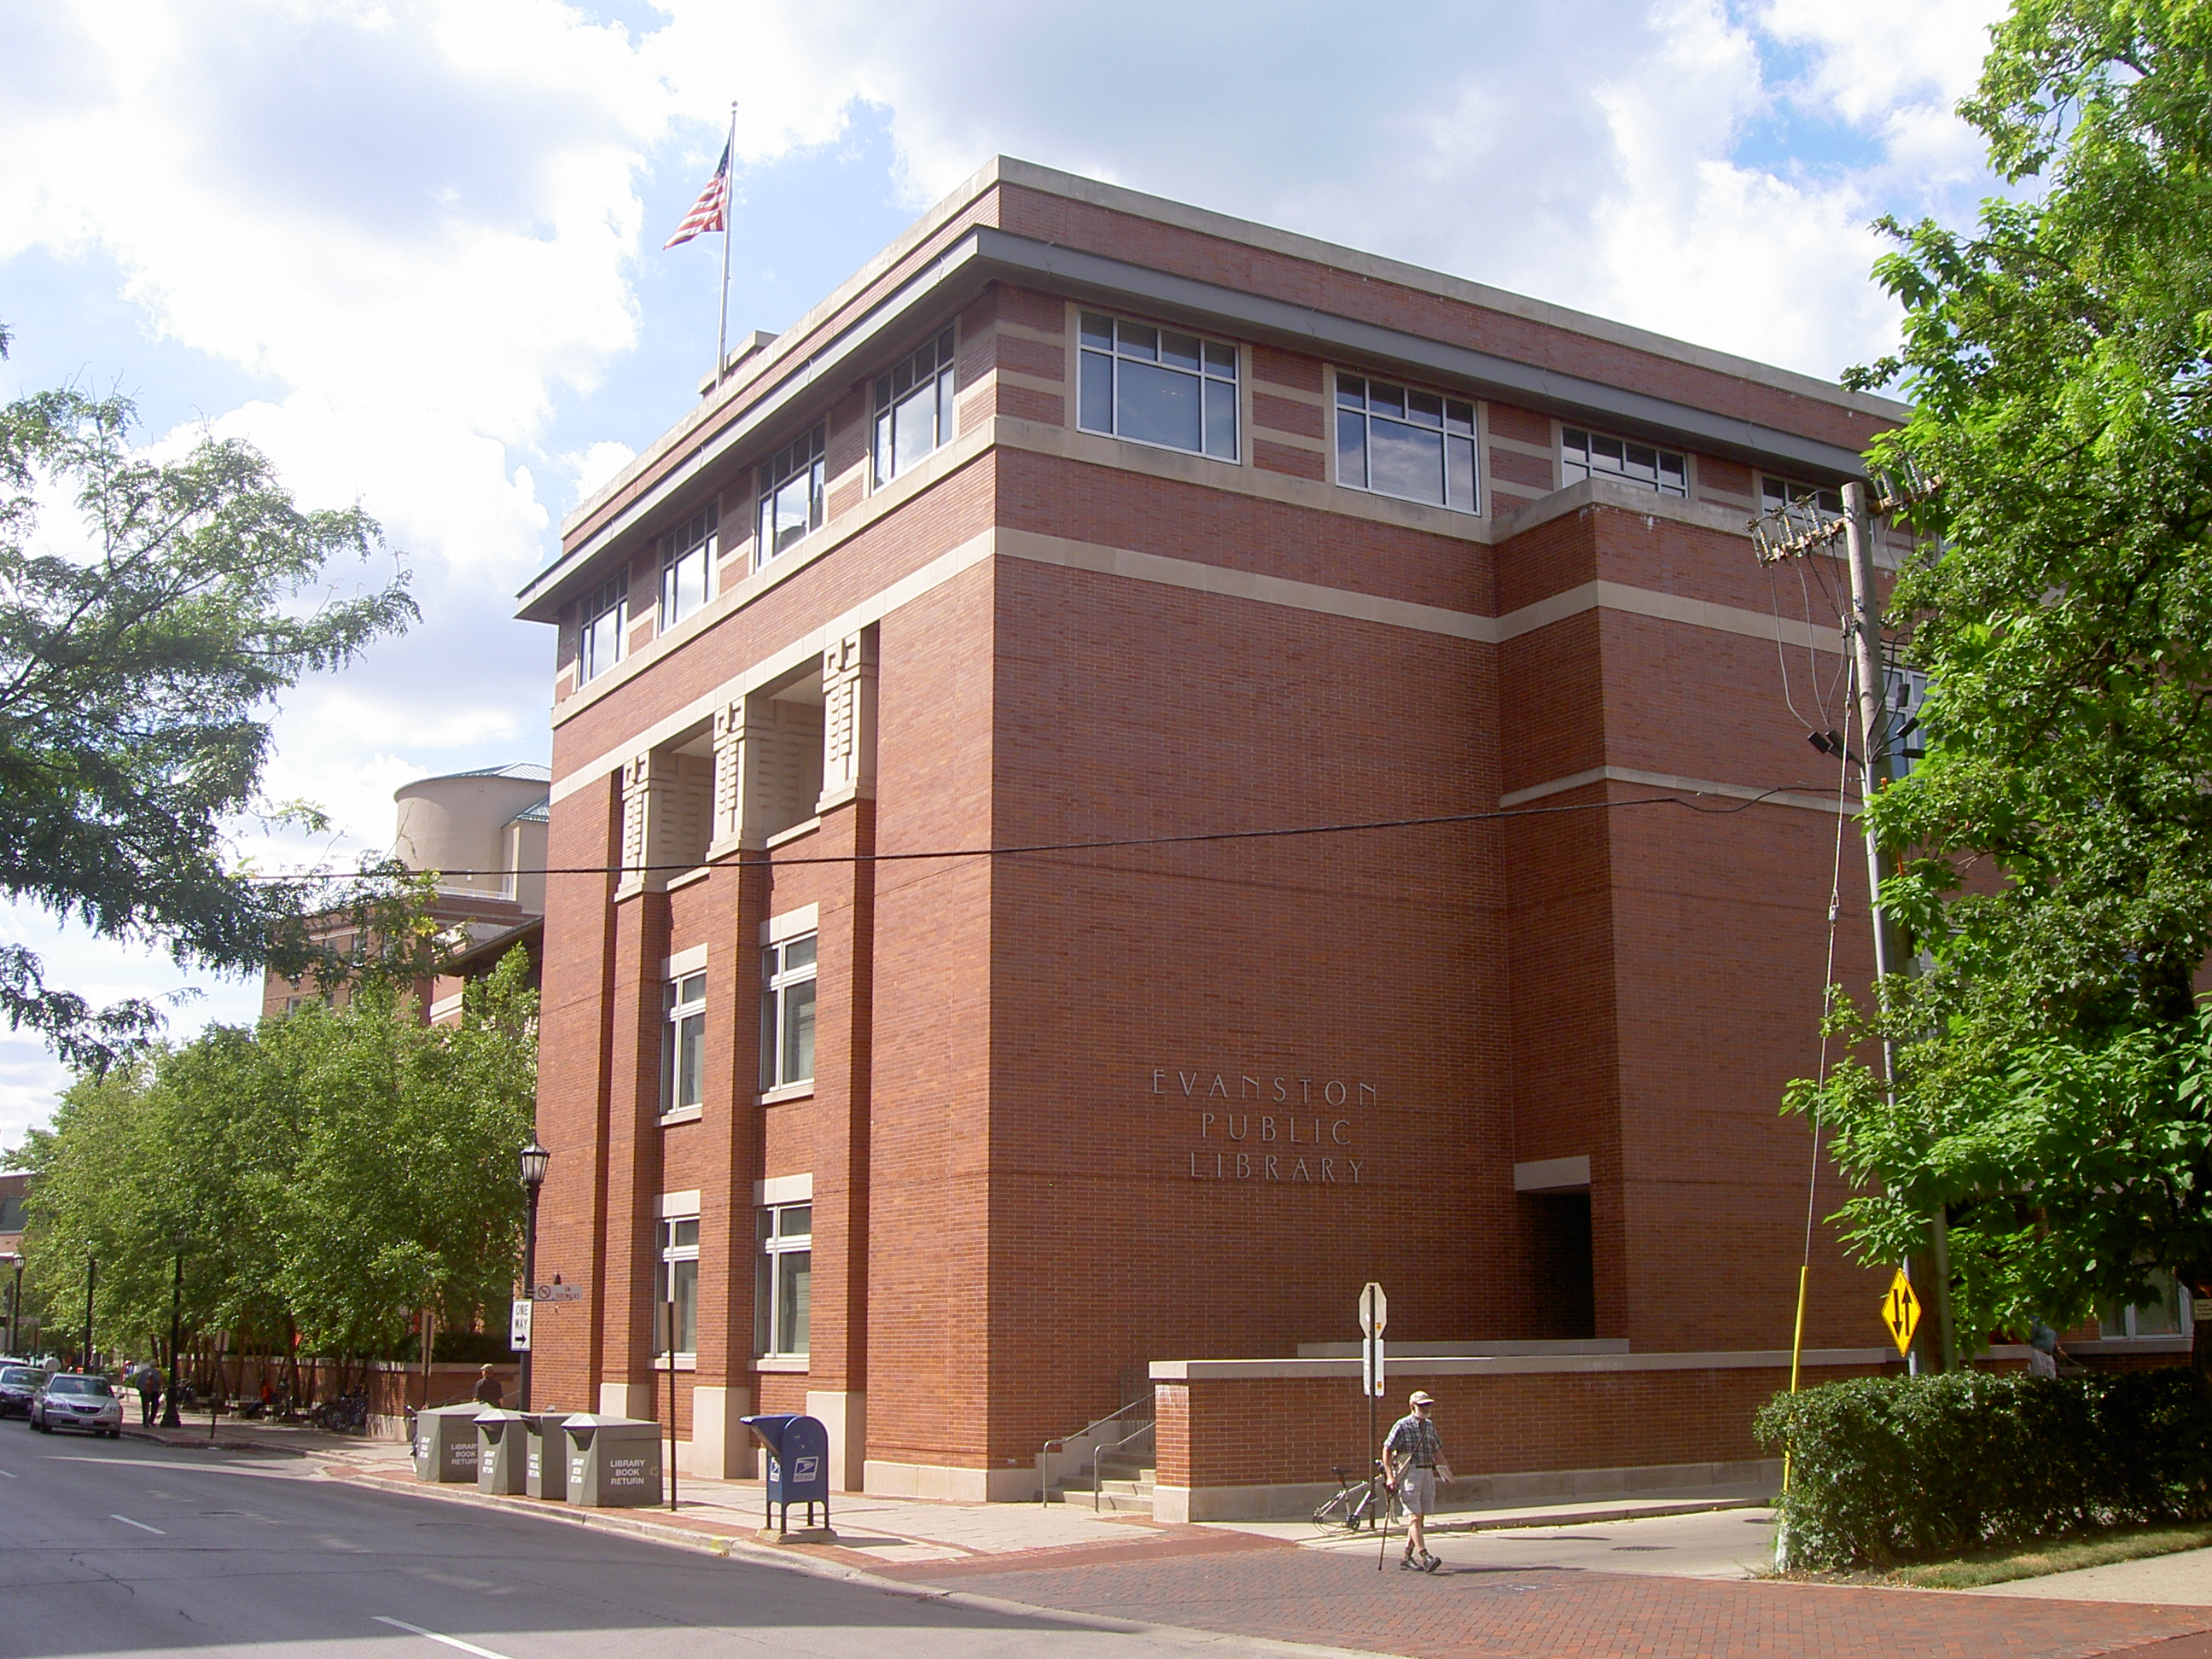 Evanston Public Library affected by hate crimes